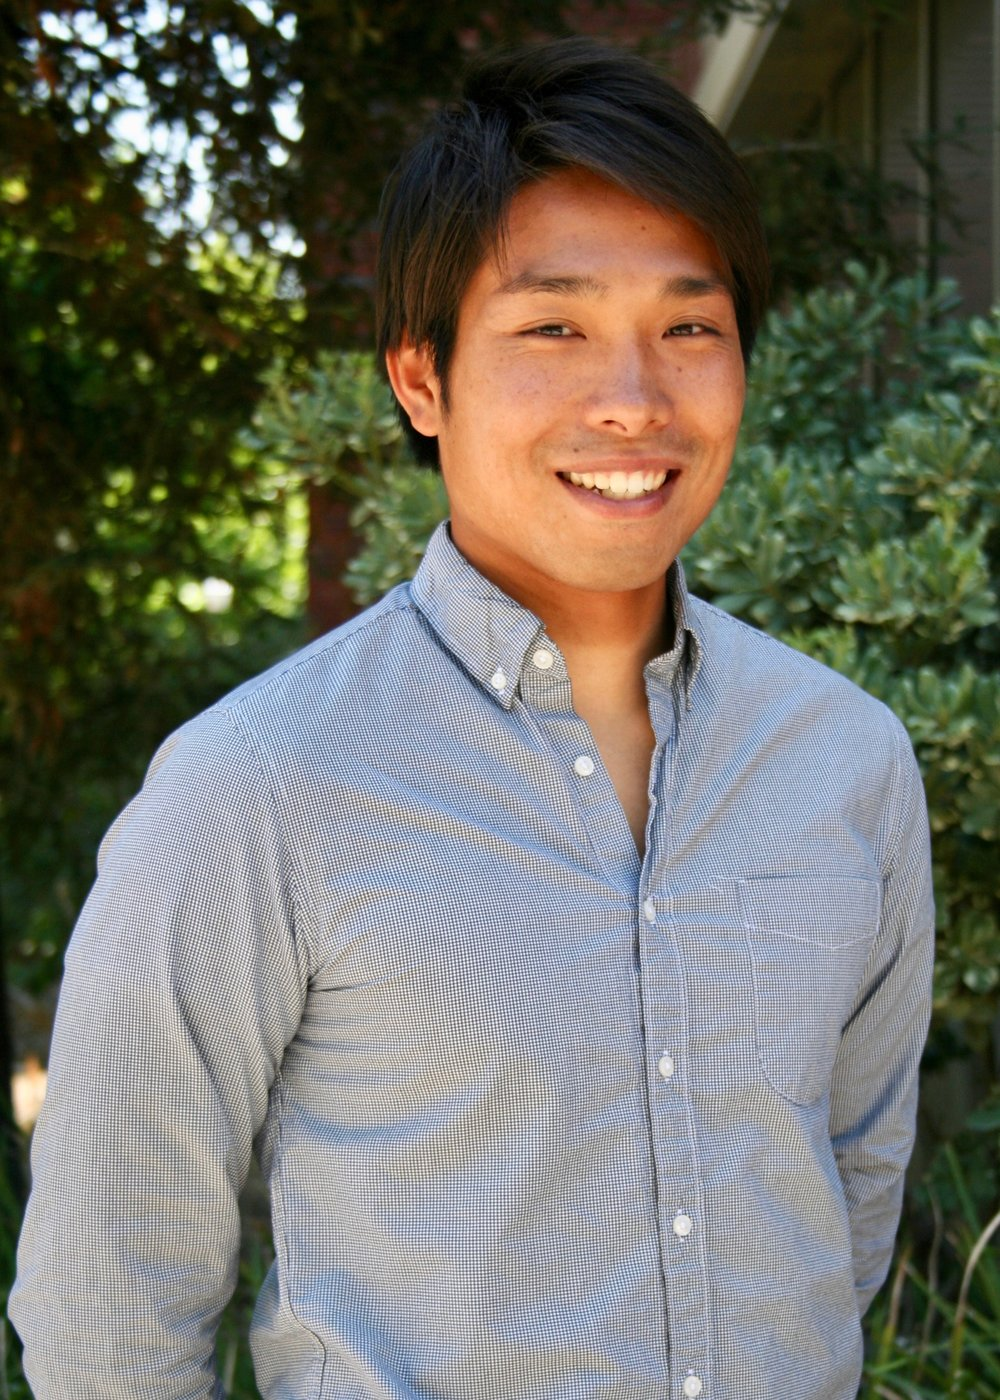 Shota Kenmochi is a second-year graduate student at UCLA studying public policy with an emphasis on the environment and energy.  Fun fact: He is a keen surfer and a descendant of Samurai.